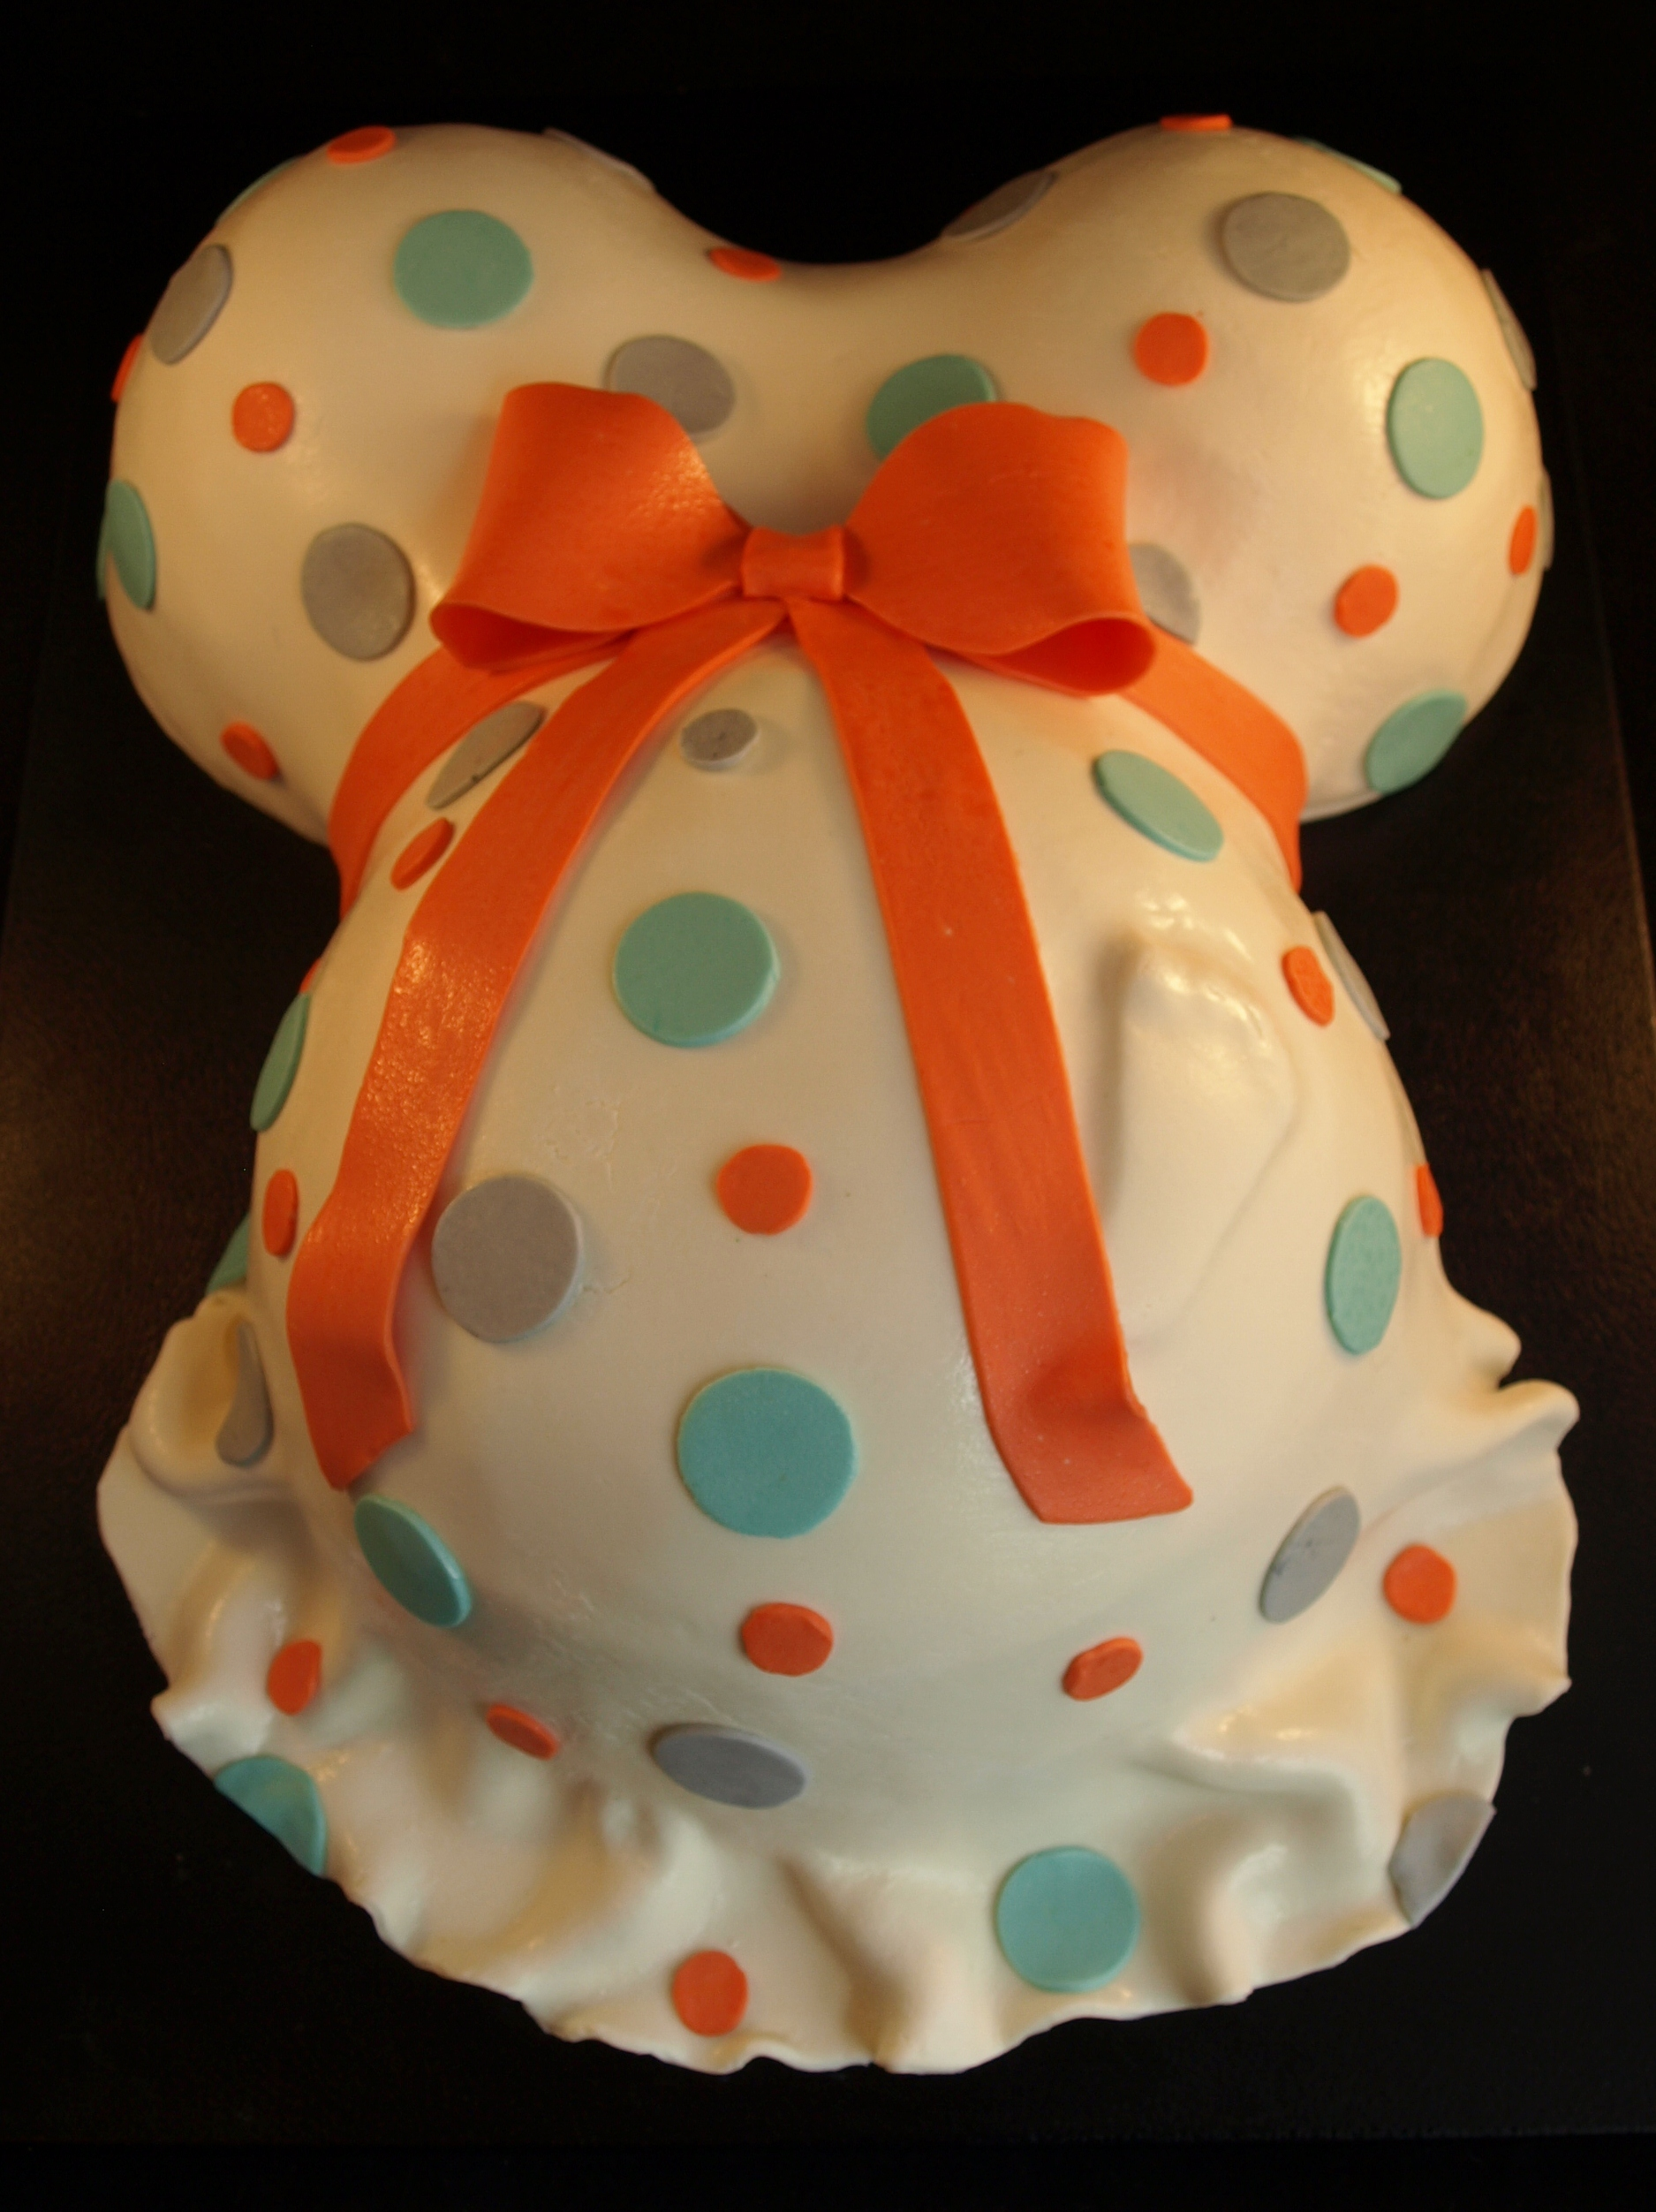 How To Make Belly Cakes For Baby Shower